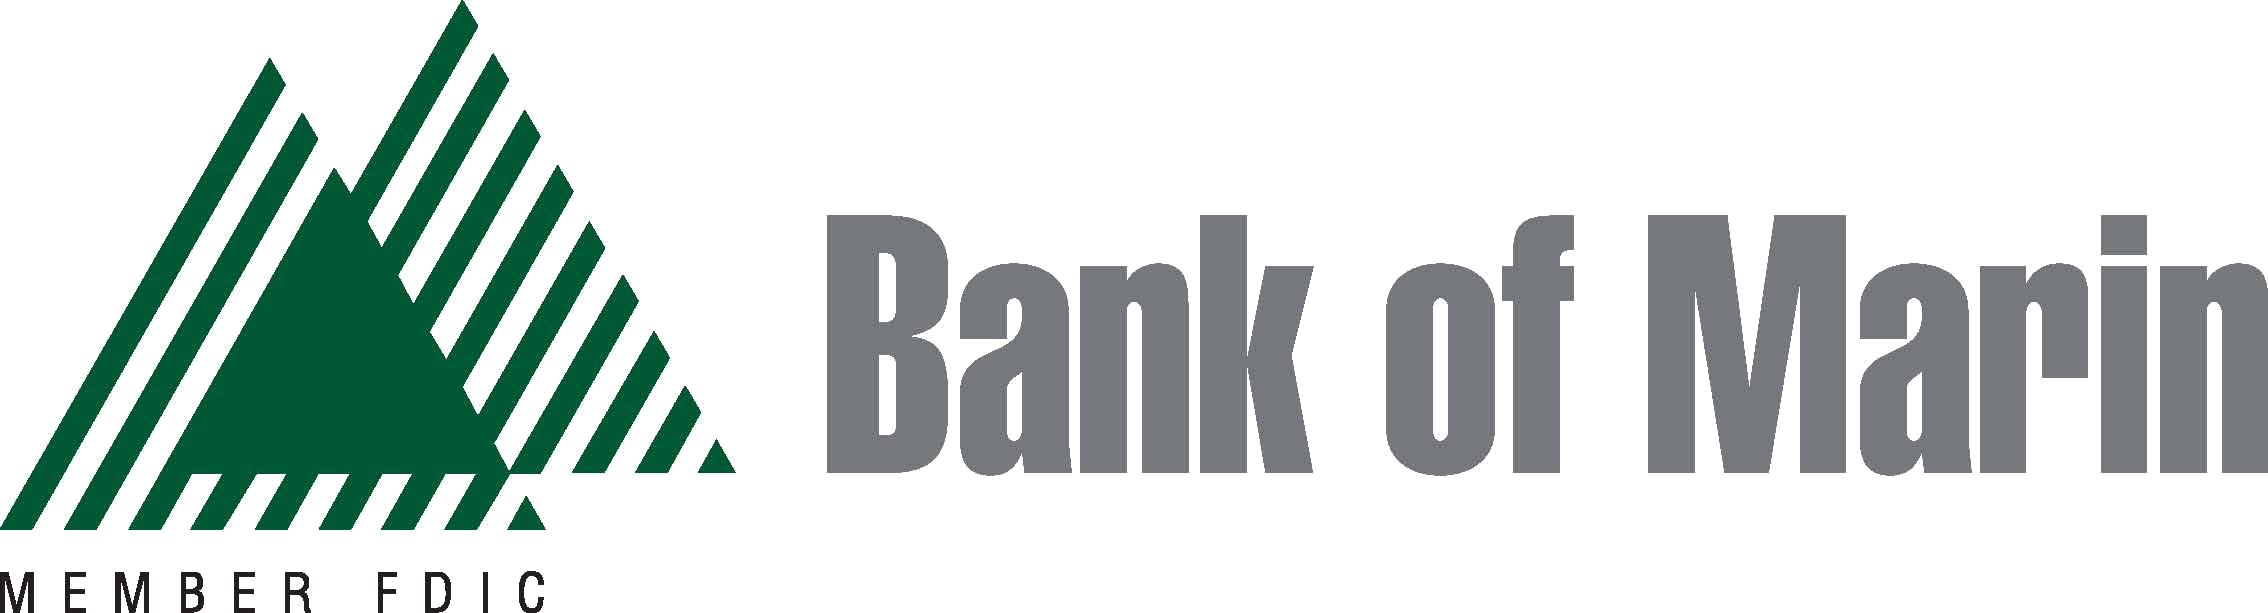 Bank of Marin Logo Board of Directors